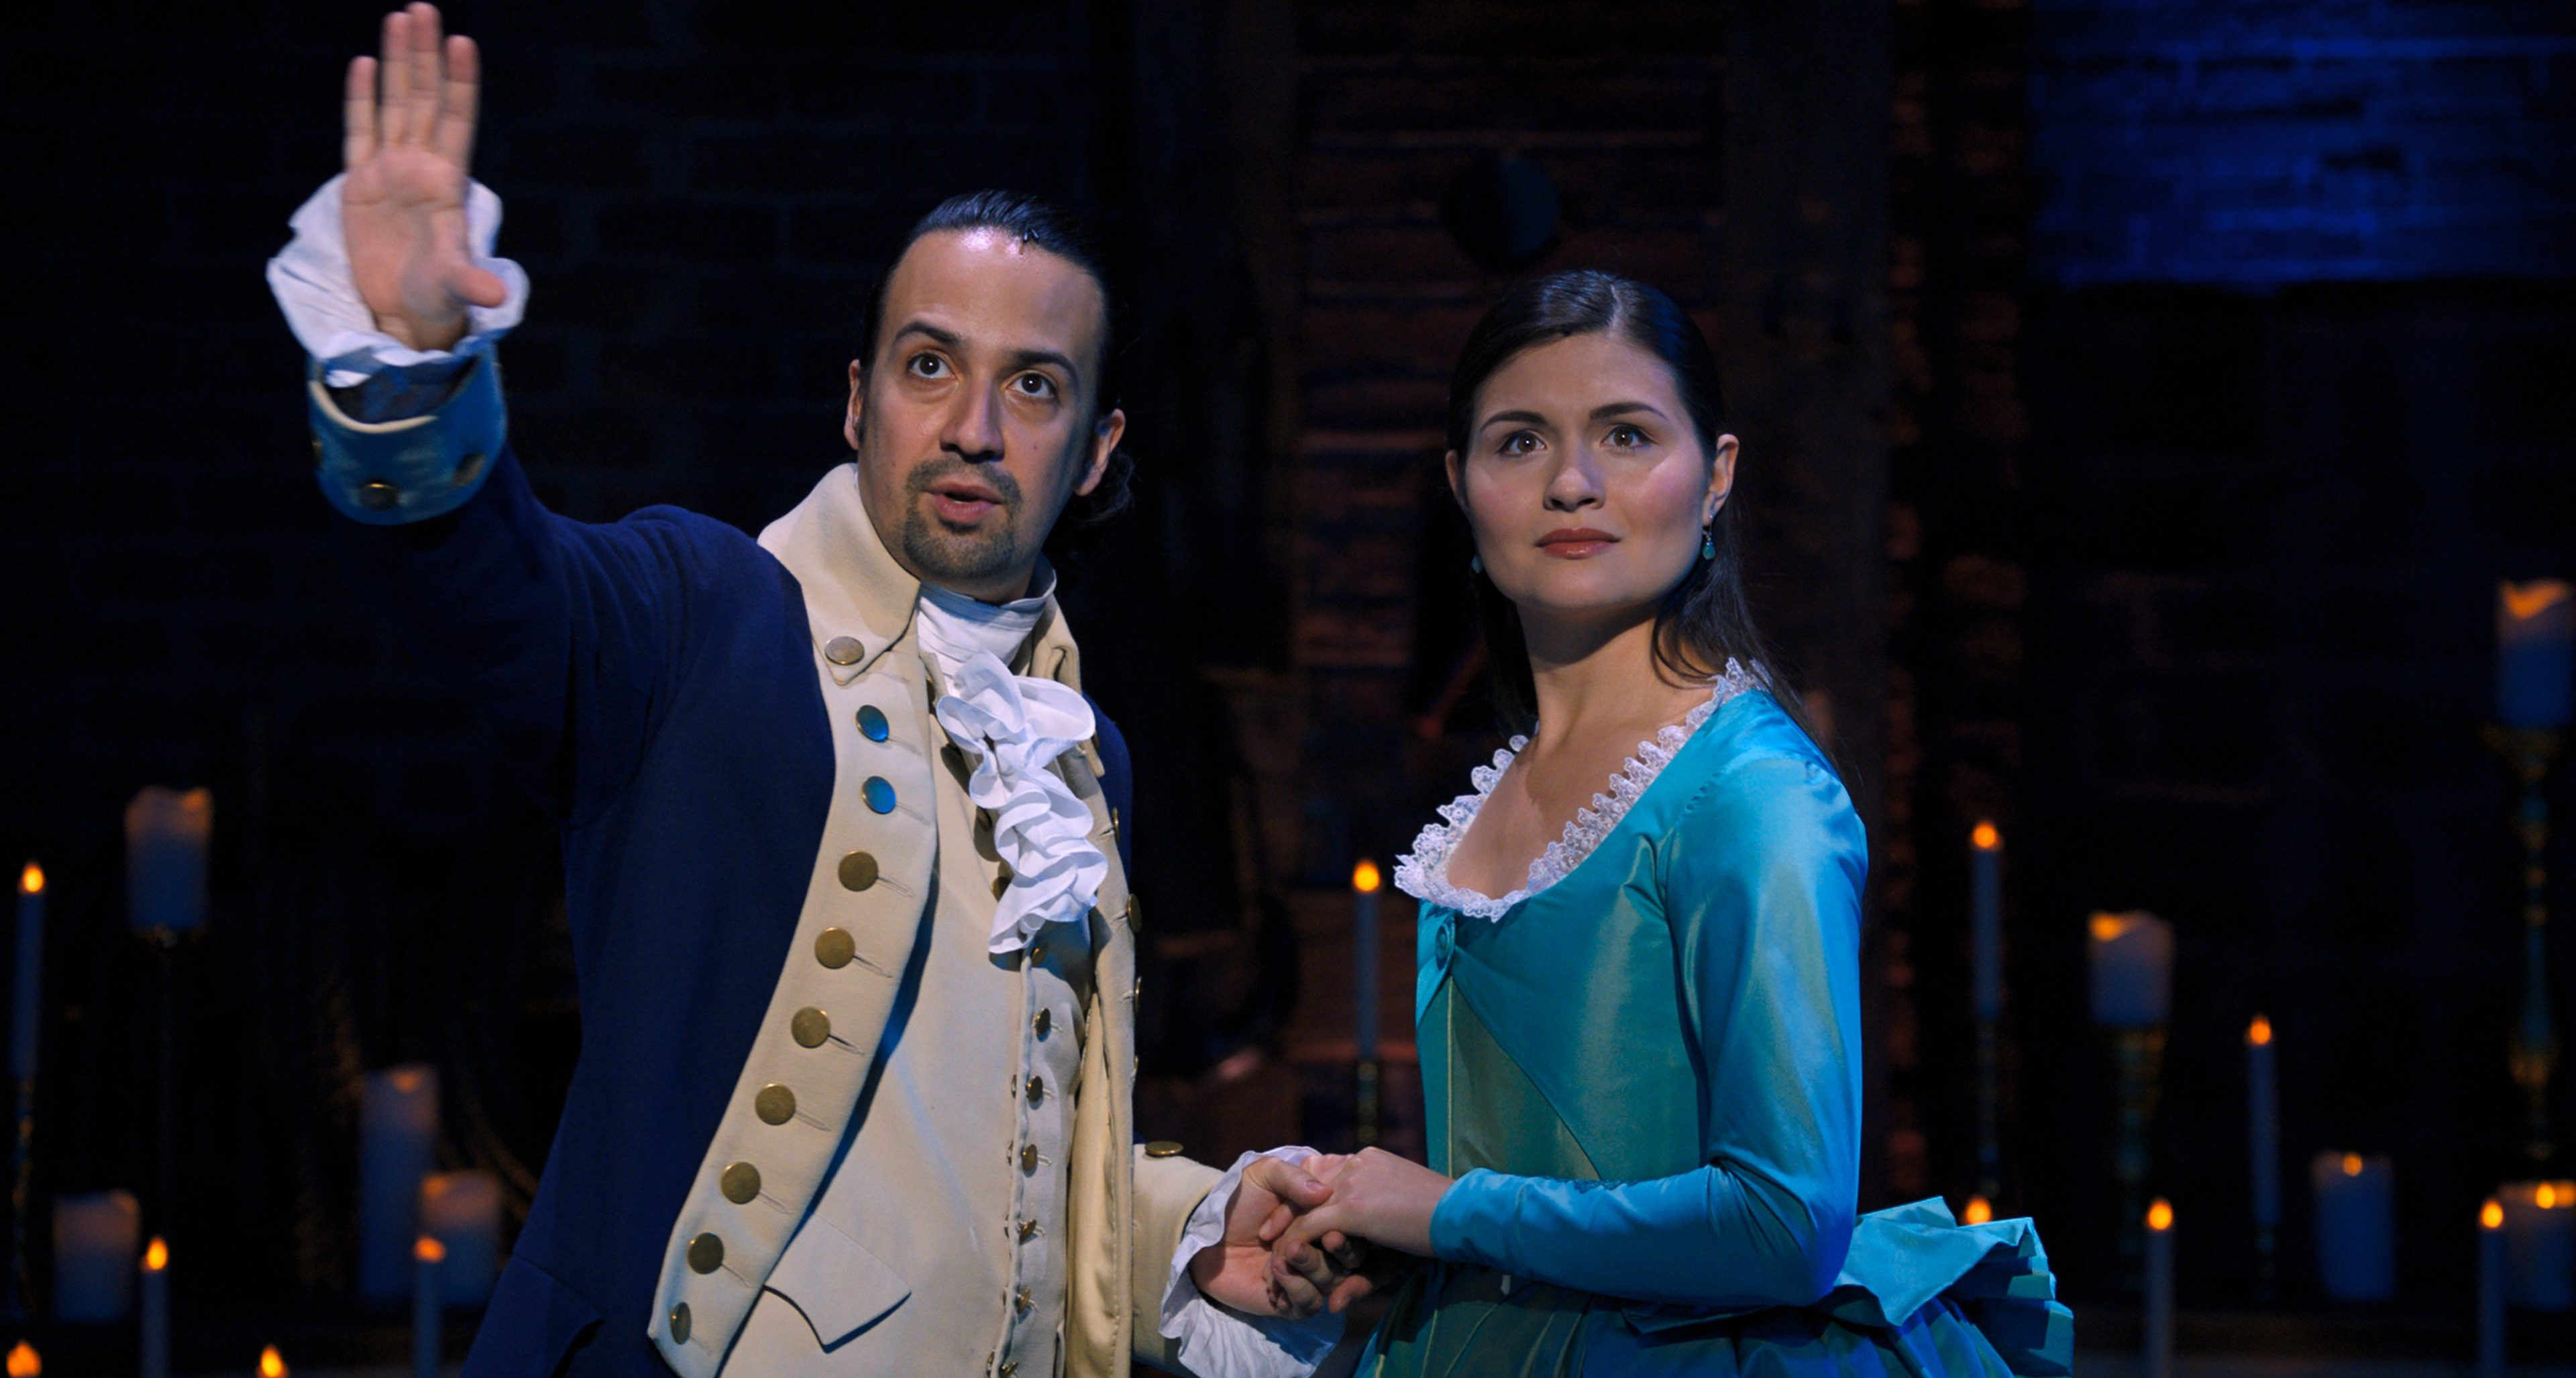 Rise Up! Disney+ Releases Trailer for 'Hamilton' Film